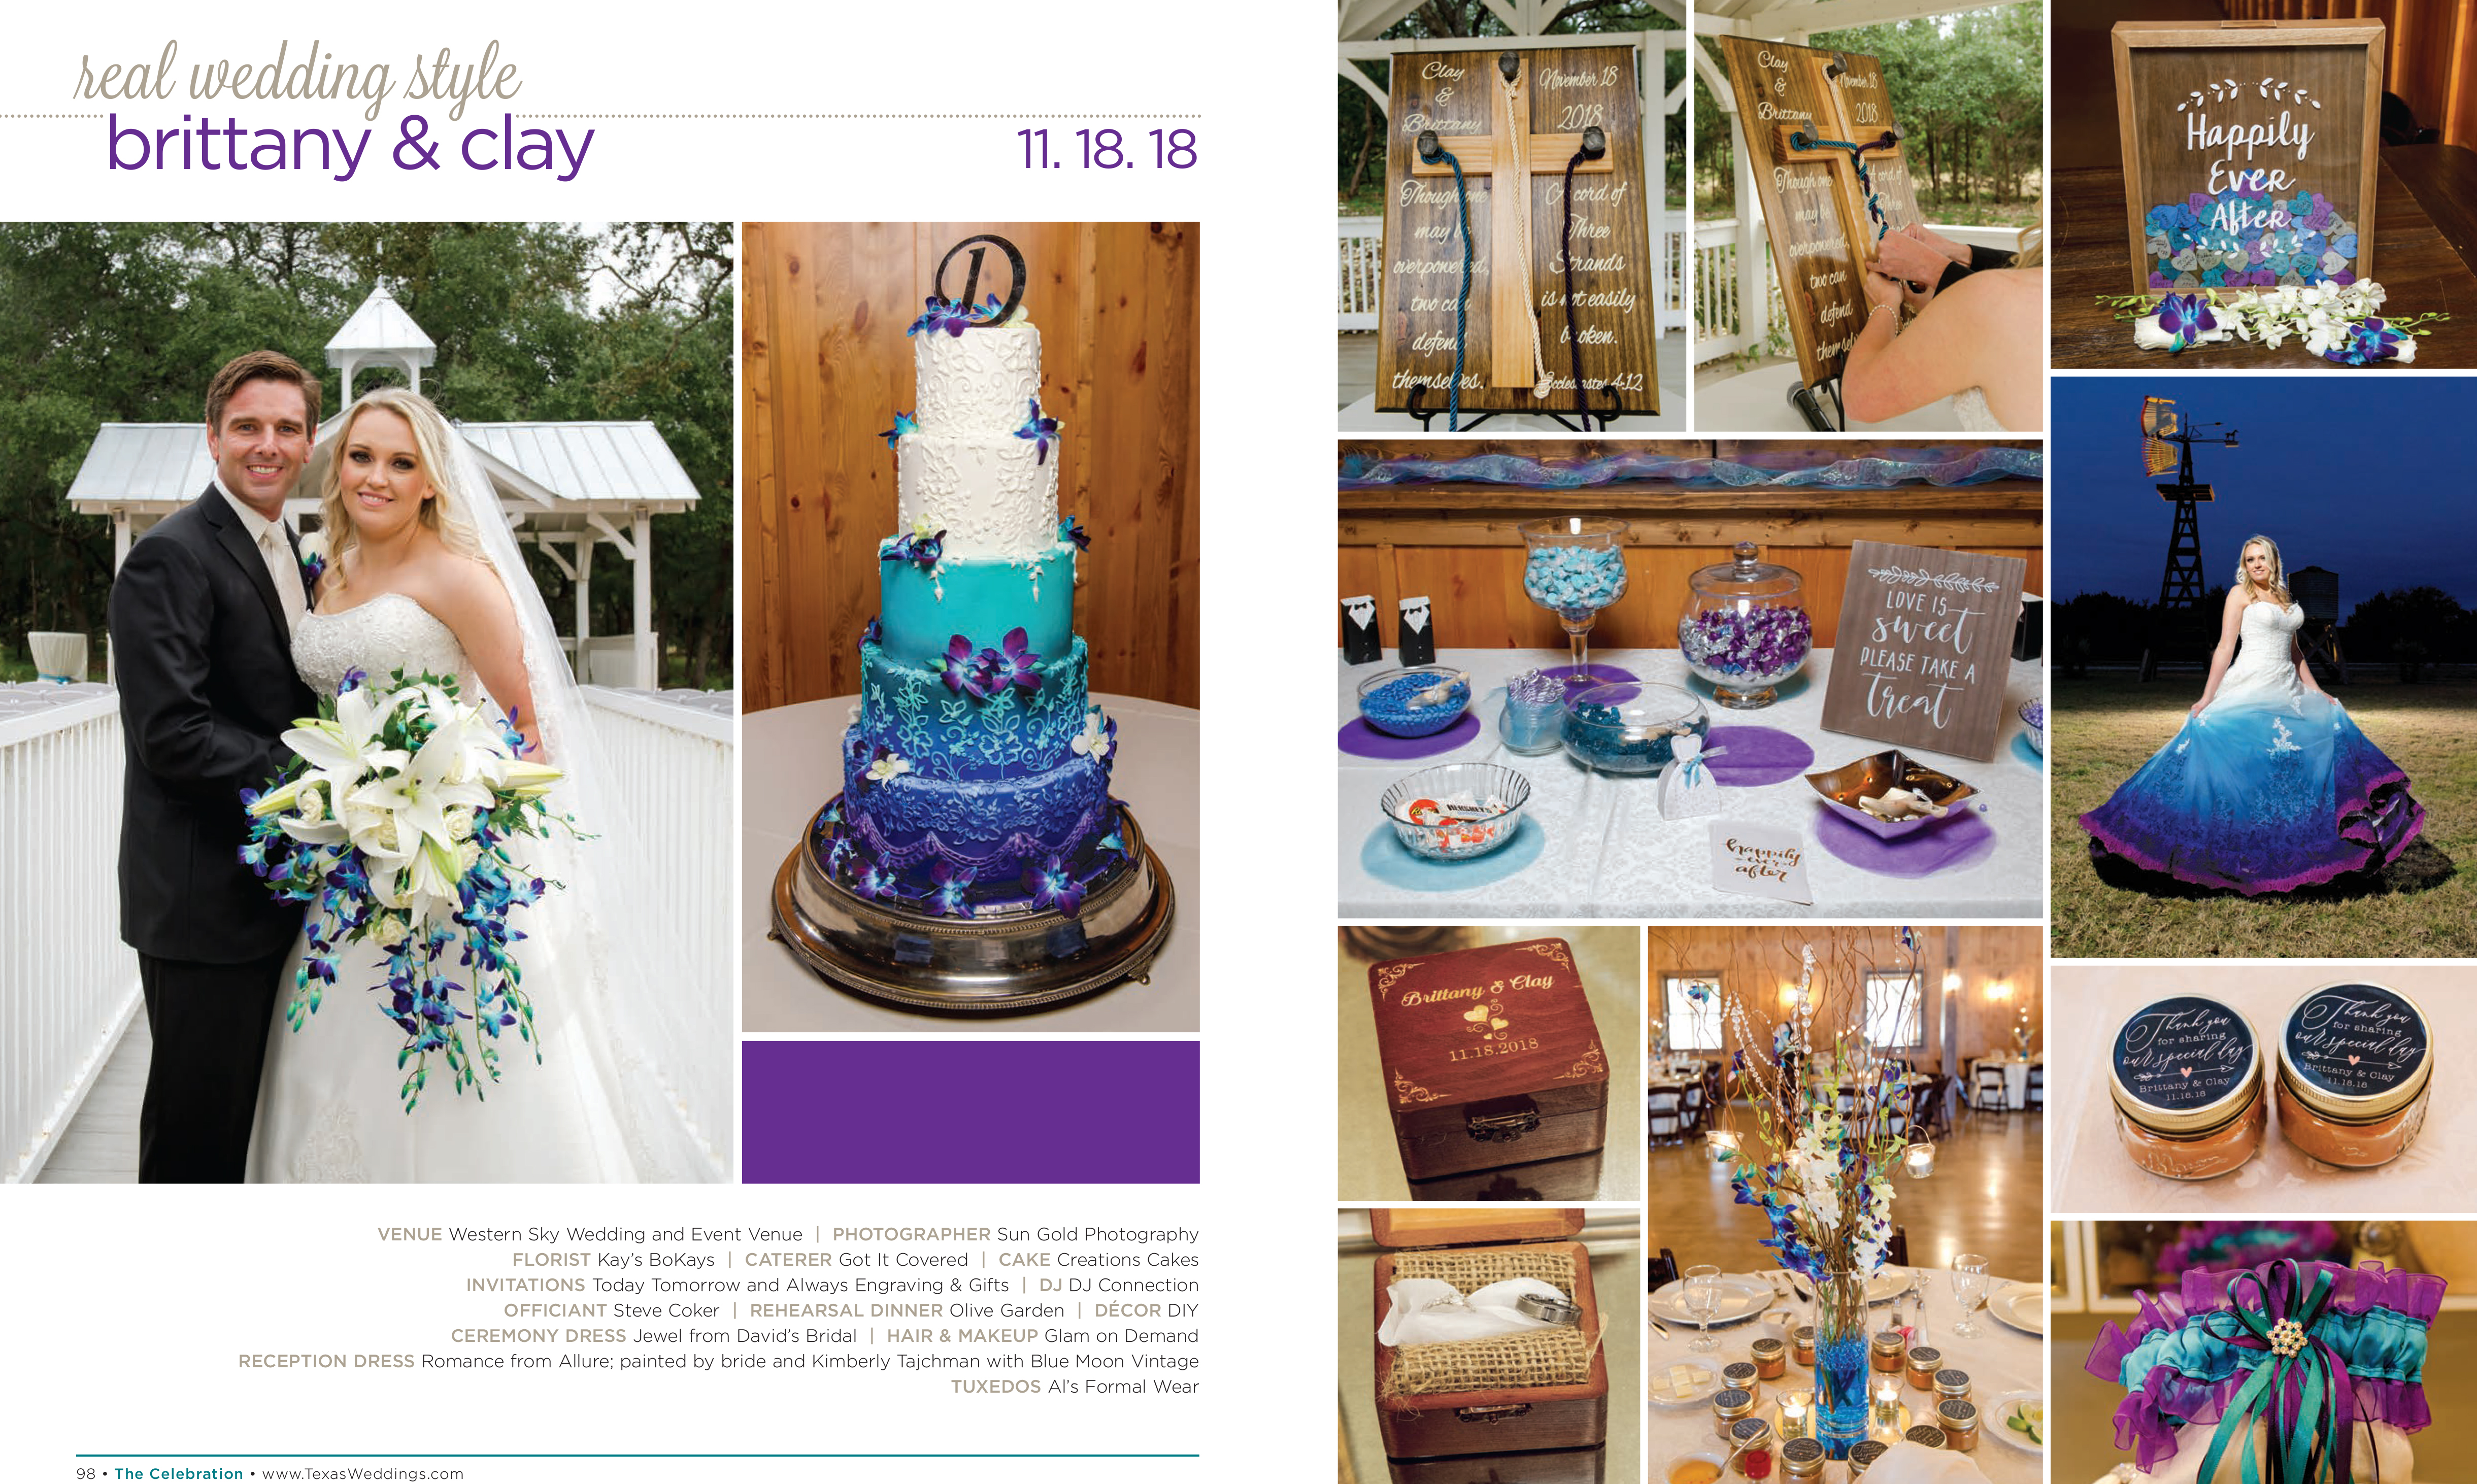 Brittany & Clay in their Real Wedding Page in the Spring/Summer 2019 Texas Wedding Guide